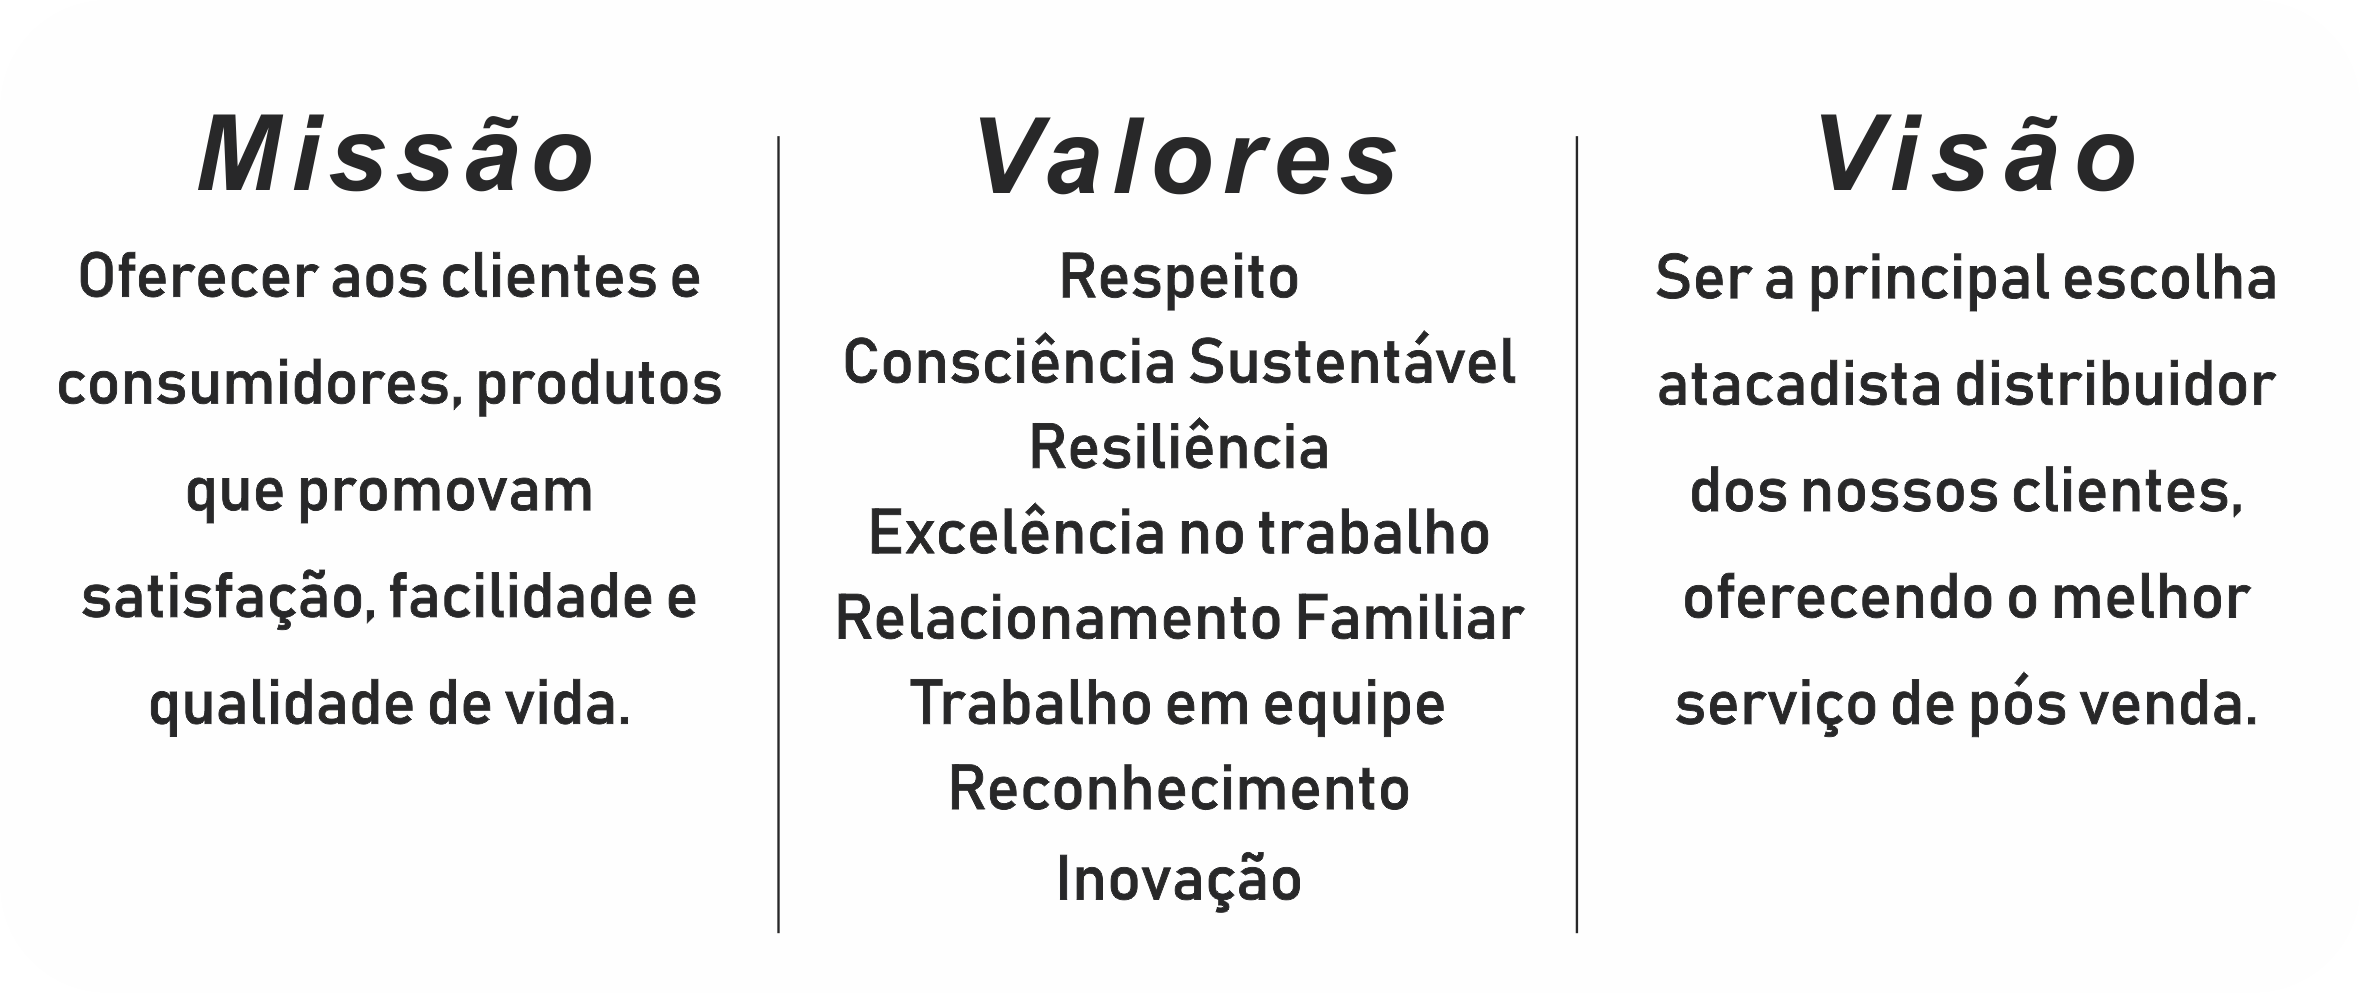 MISSAO-VISAO-VALORES-TOP SIX - 2